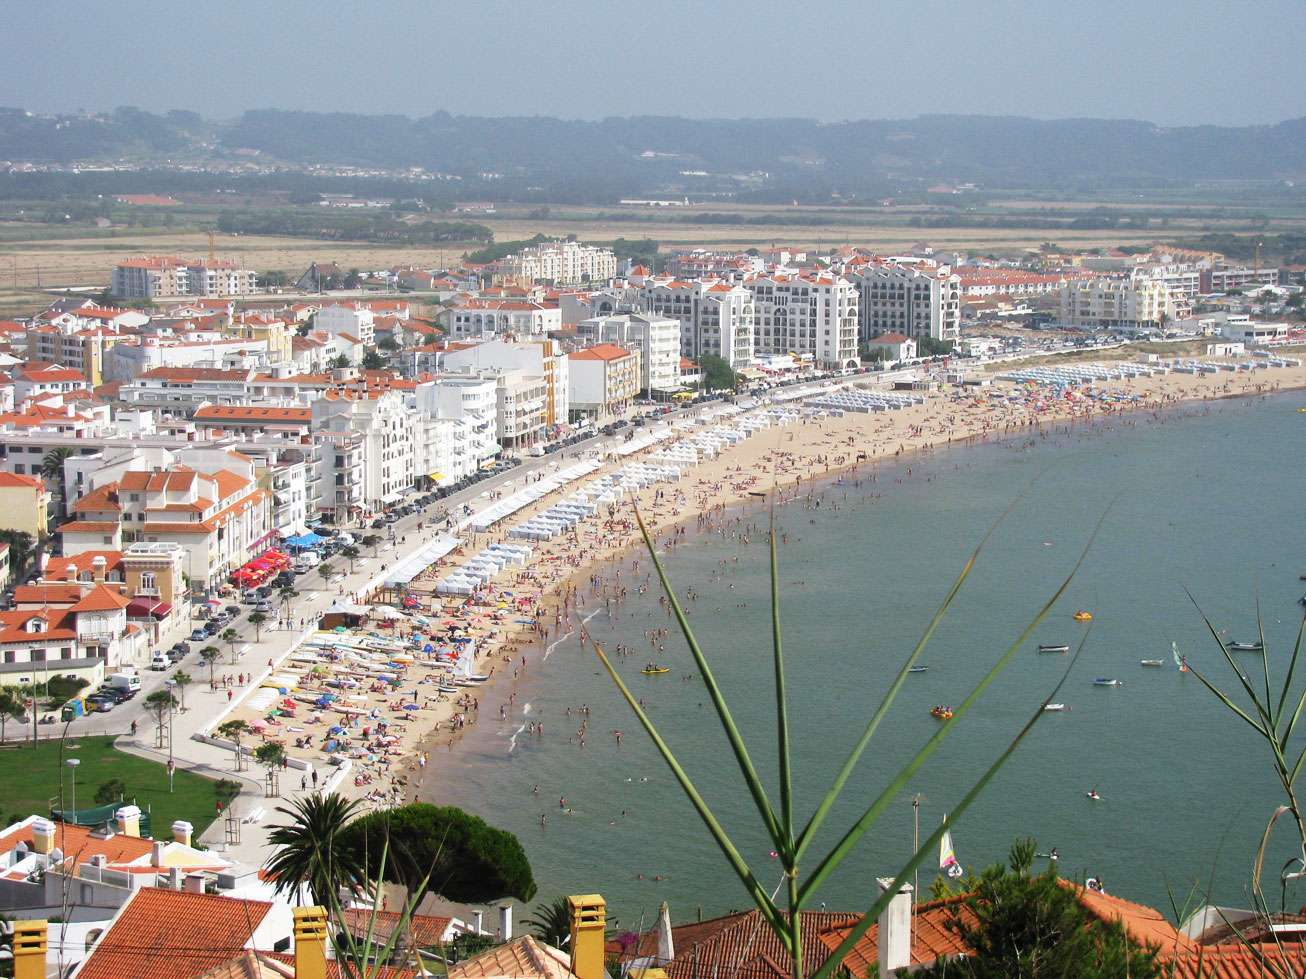 Sightseeing Tours in the Center of Portugal - Turismo de Portugal - Gowestours - Go West Tours